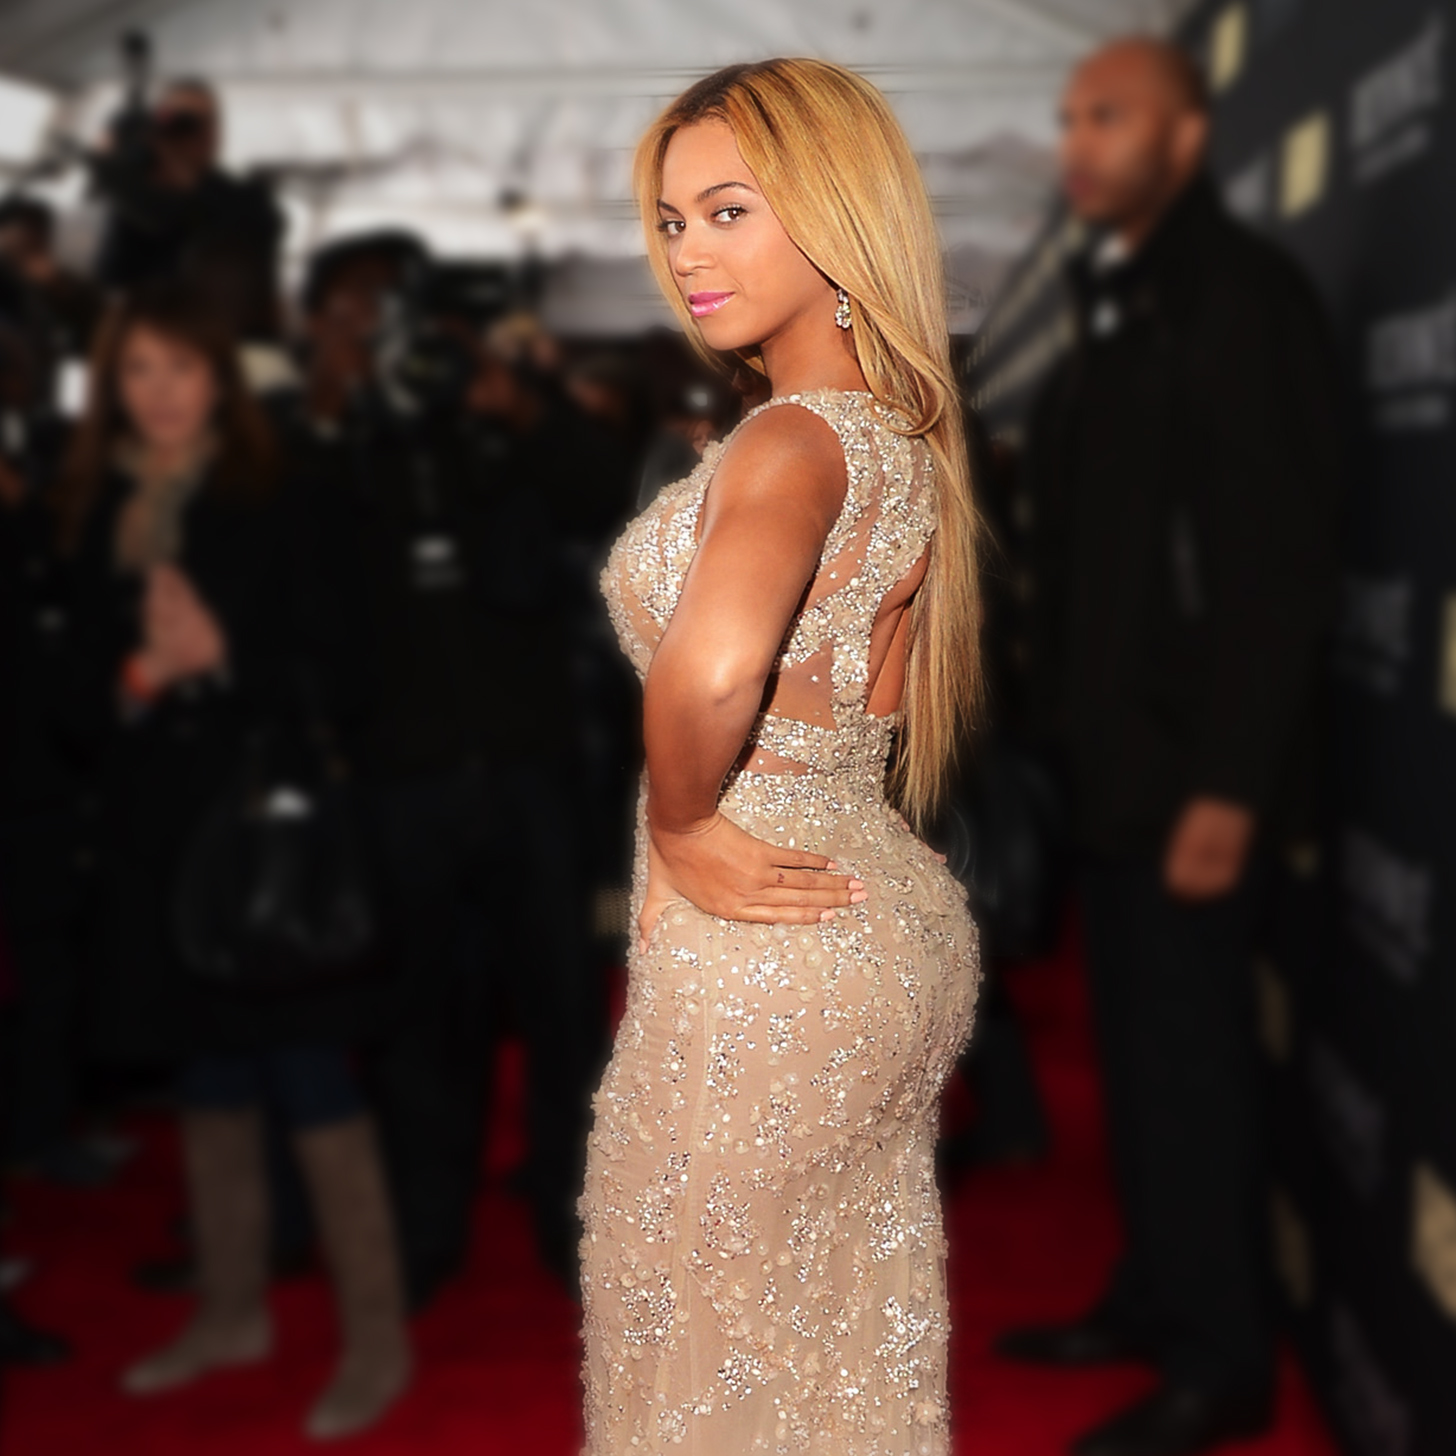 Exercises That Give You A Good Bum Like Beyonce | POPSUGAR Fitness ...